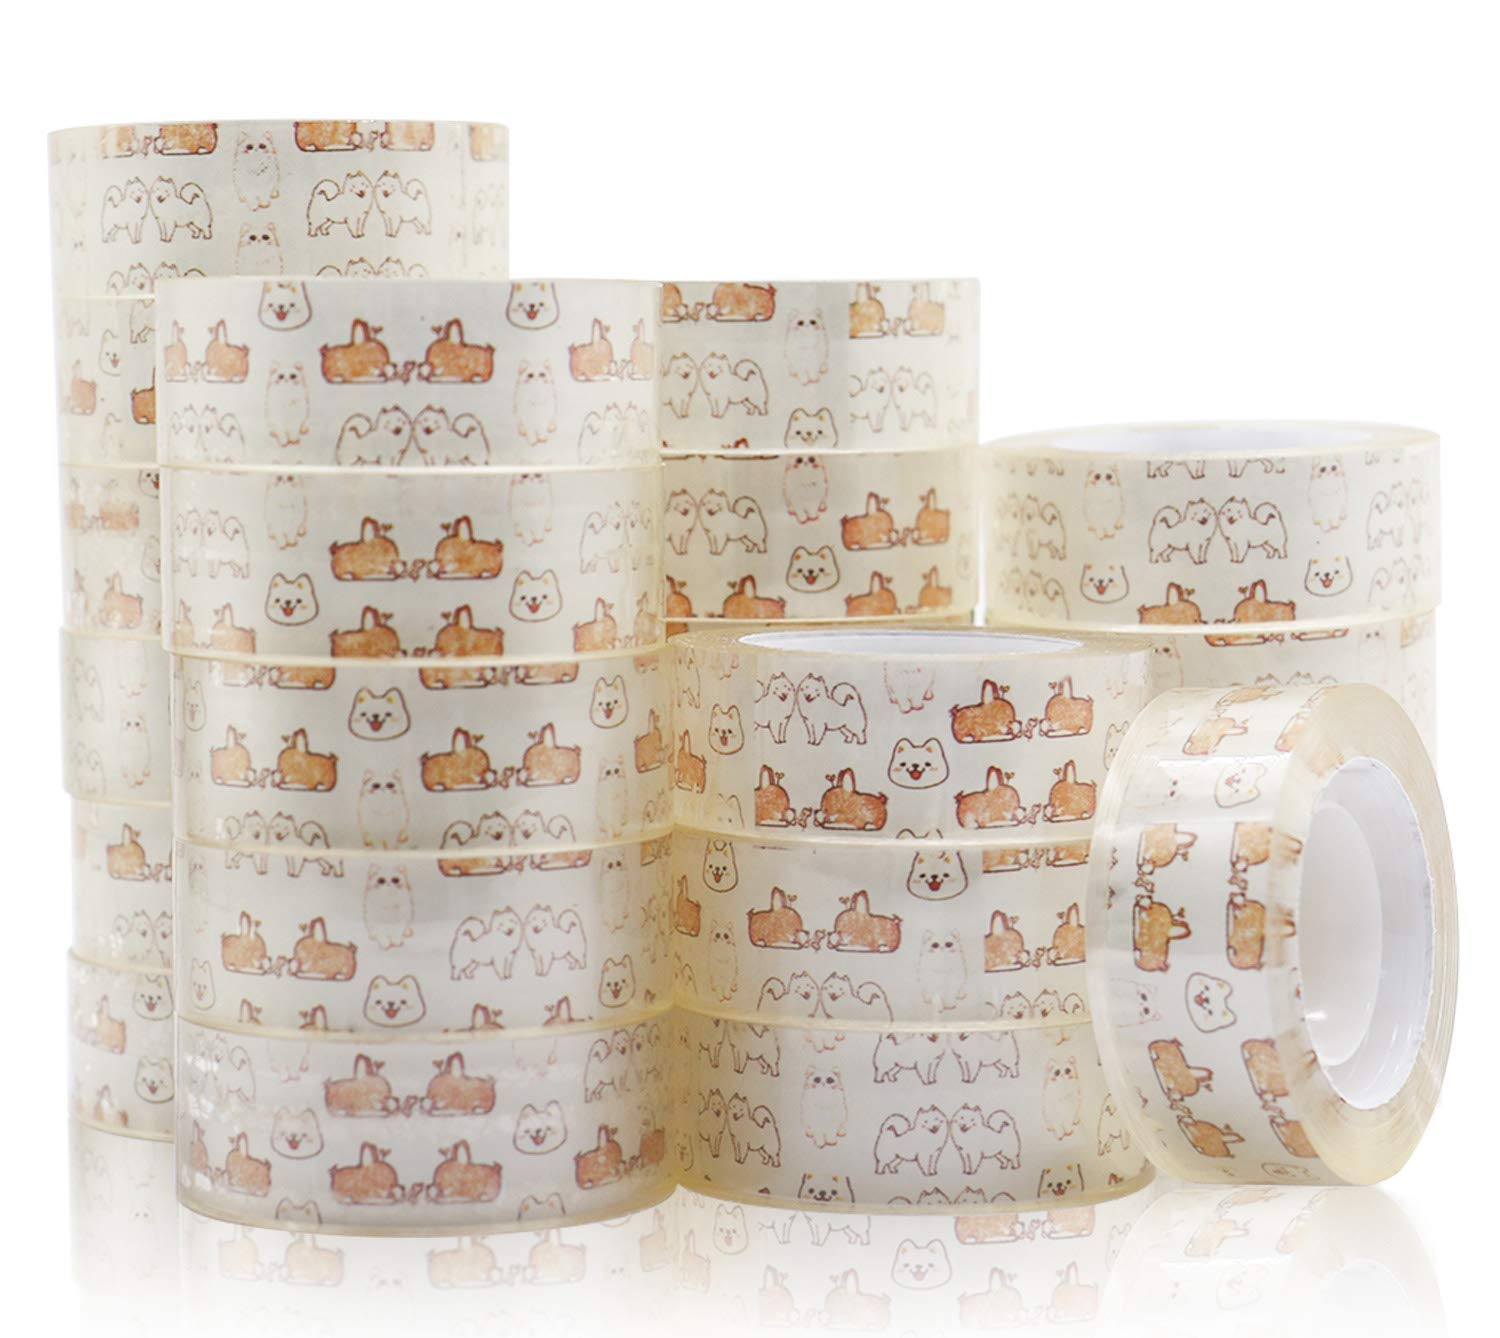 24 Pack Transparent Crystal Clear Tape, Refill Rolls for Office, School, and Home, 1inch core 3/4inch x 1000inch, BOMEI PACK